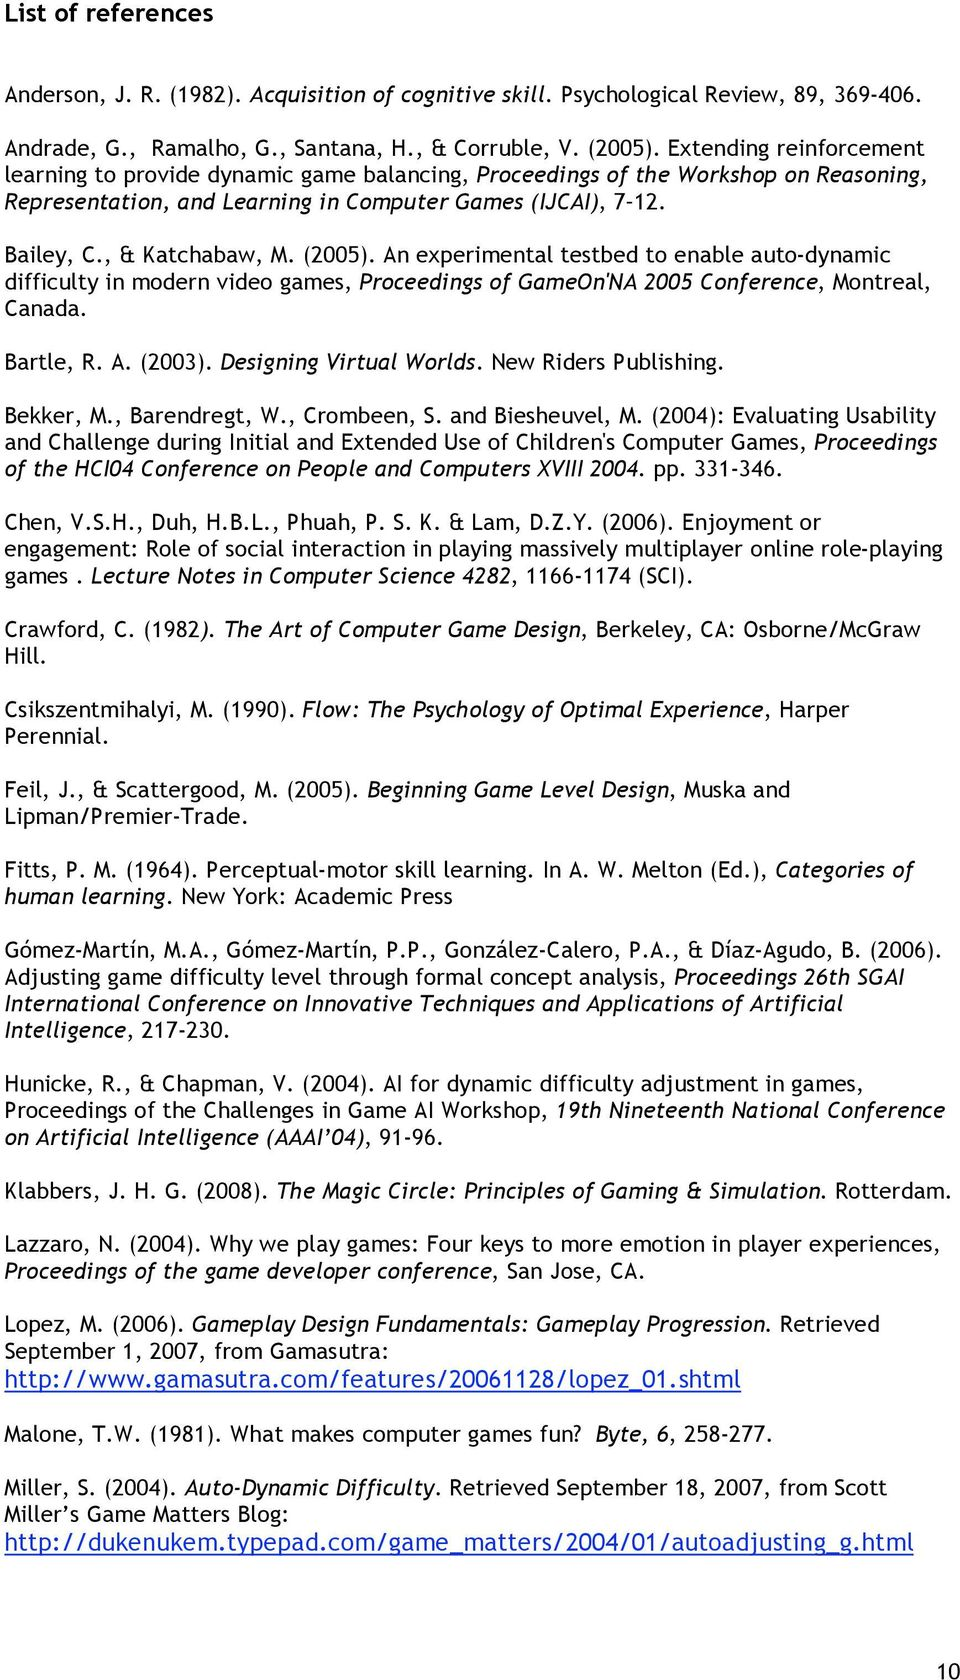 (2005). An experimental testbed to enable auto-dynamic difficulty in modern video games, Proceedings of GameOn'NA 2005 Conference, Montreal, Canada. Bartle, R. A. (2003). Designing Virtual Worlds.